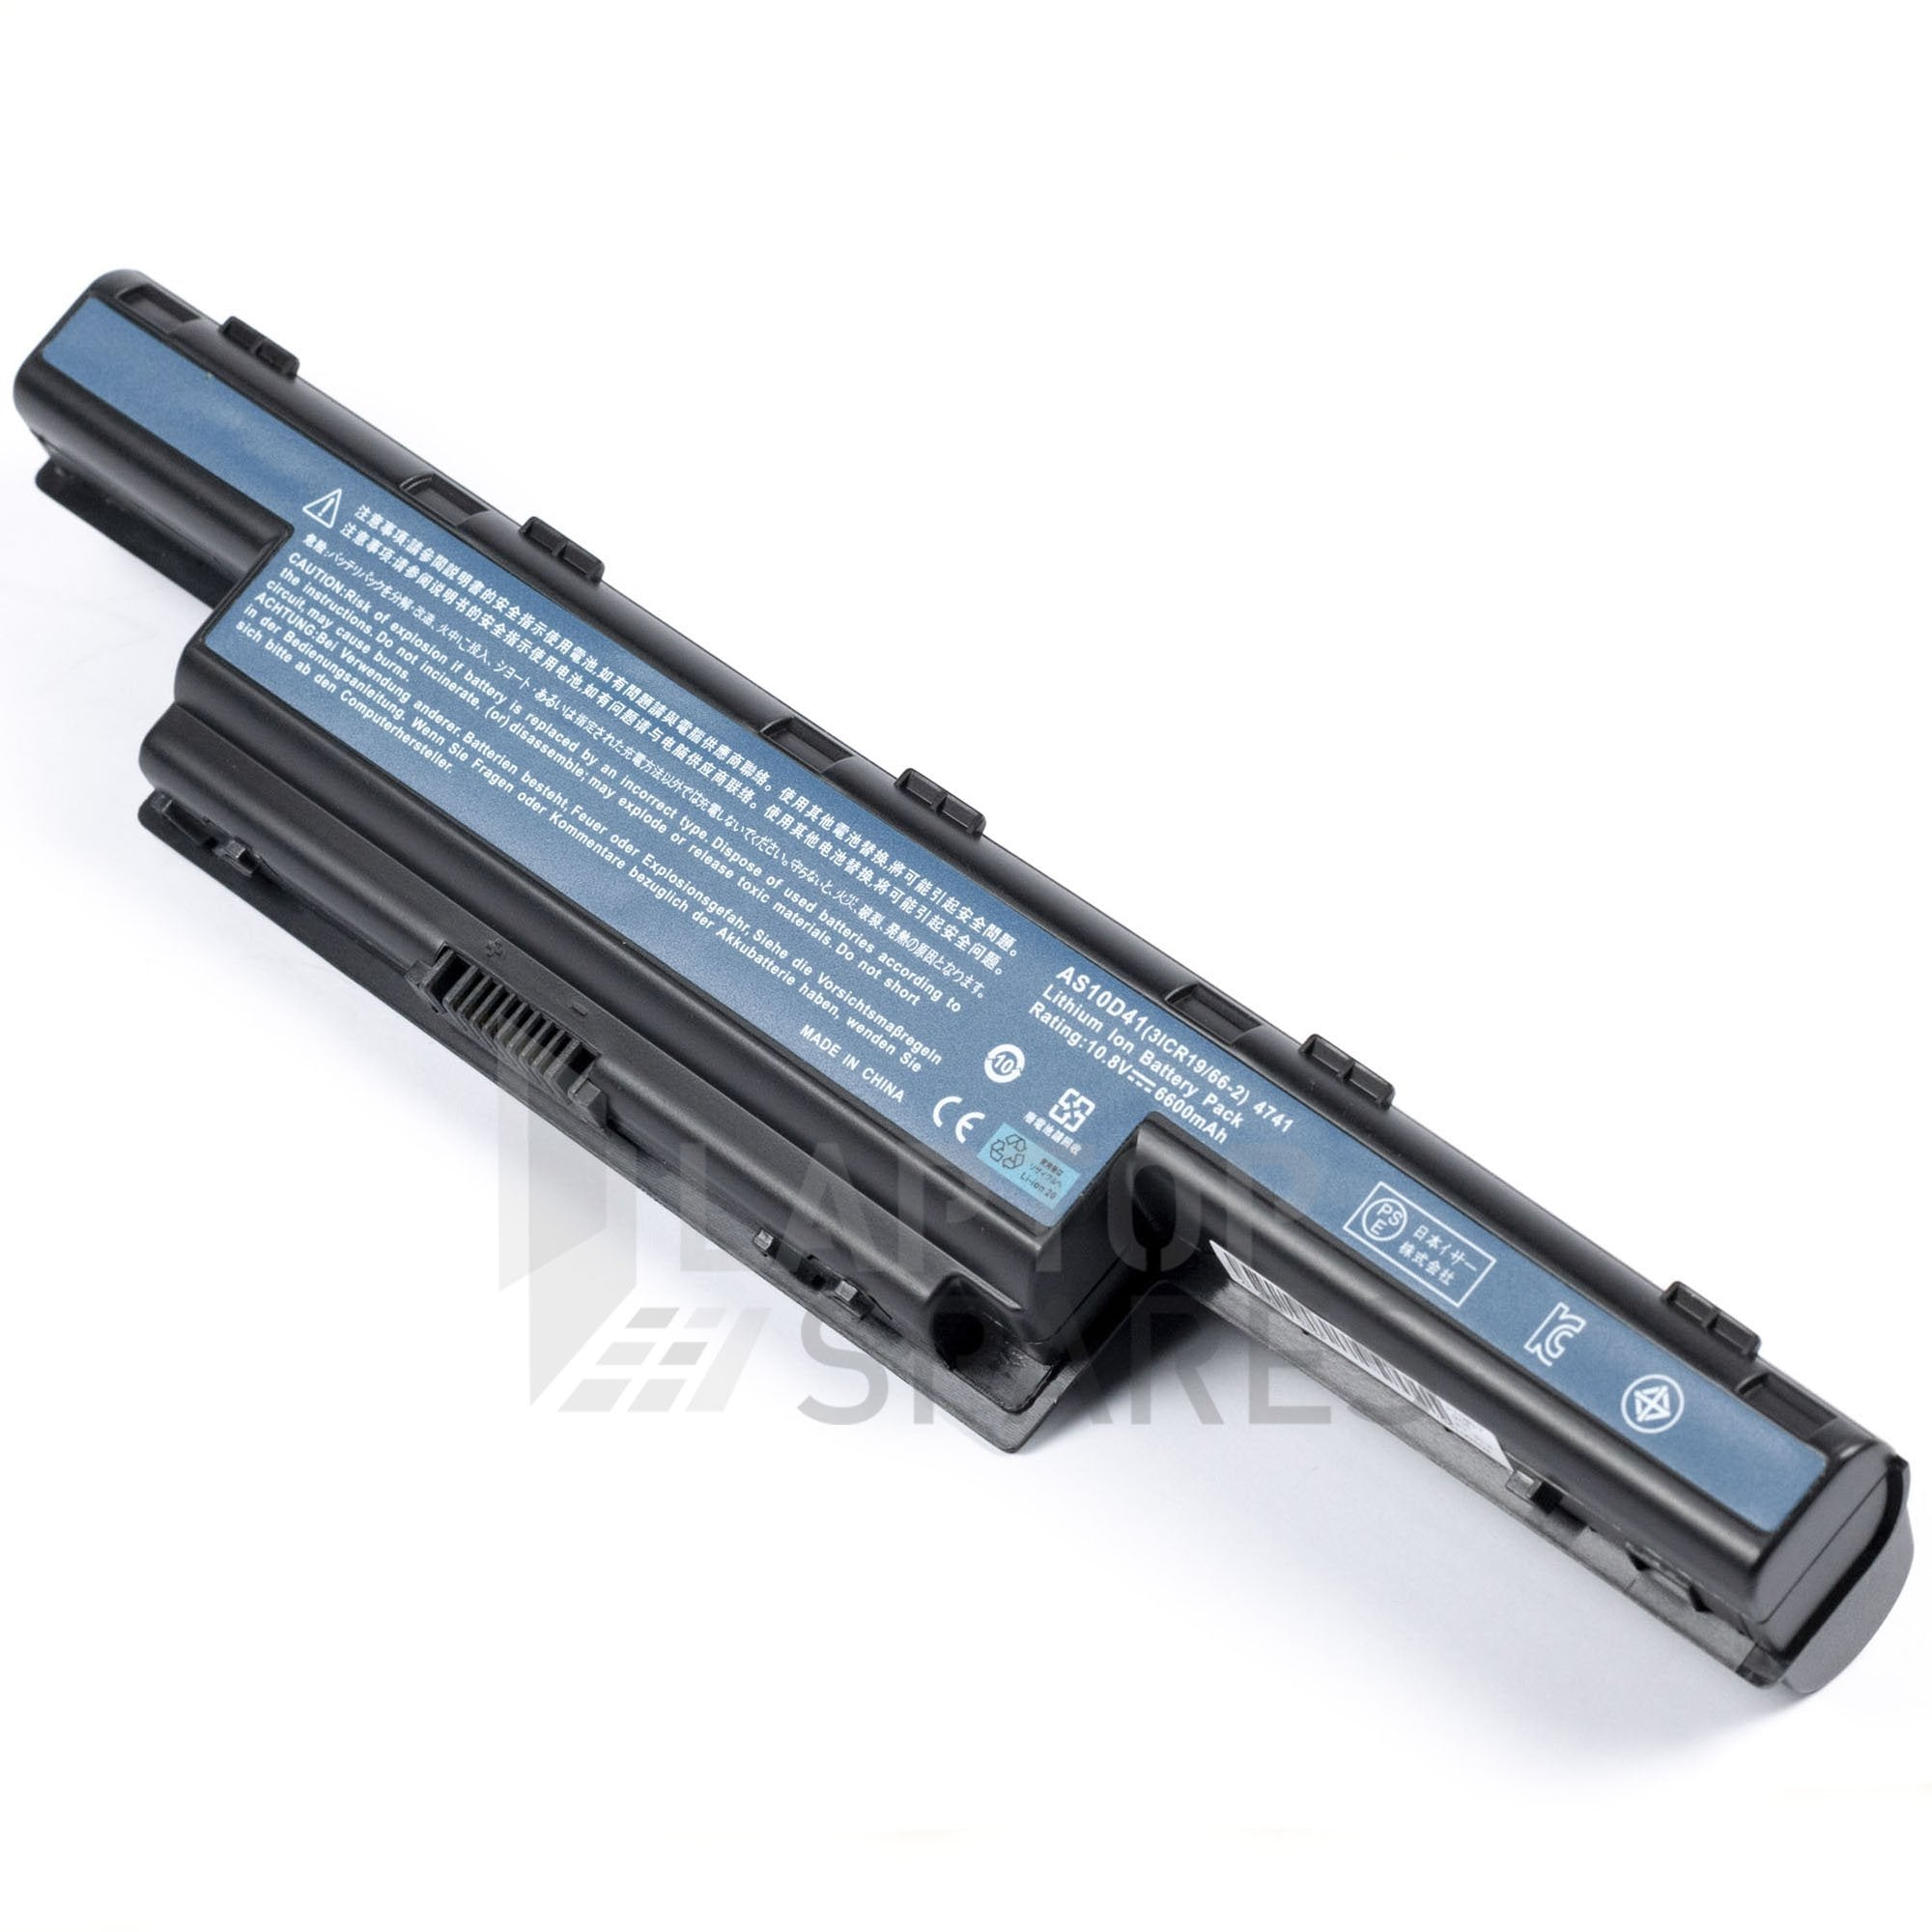 Acer Aspire 4755 5251 5252 6600mAh 9 Cell Battery